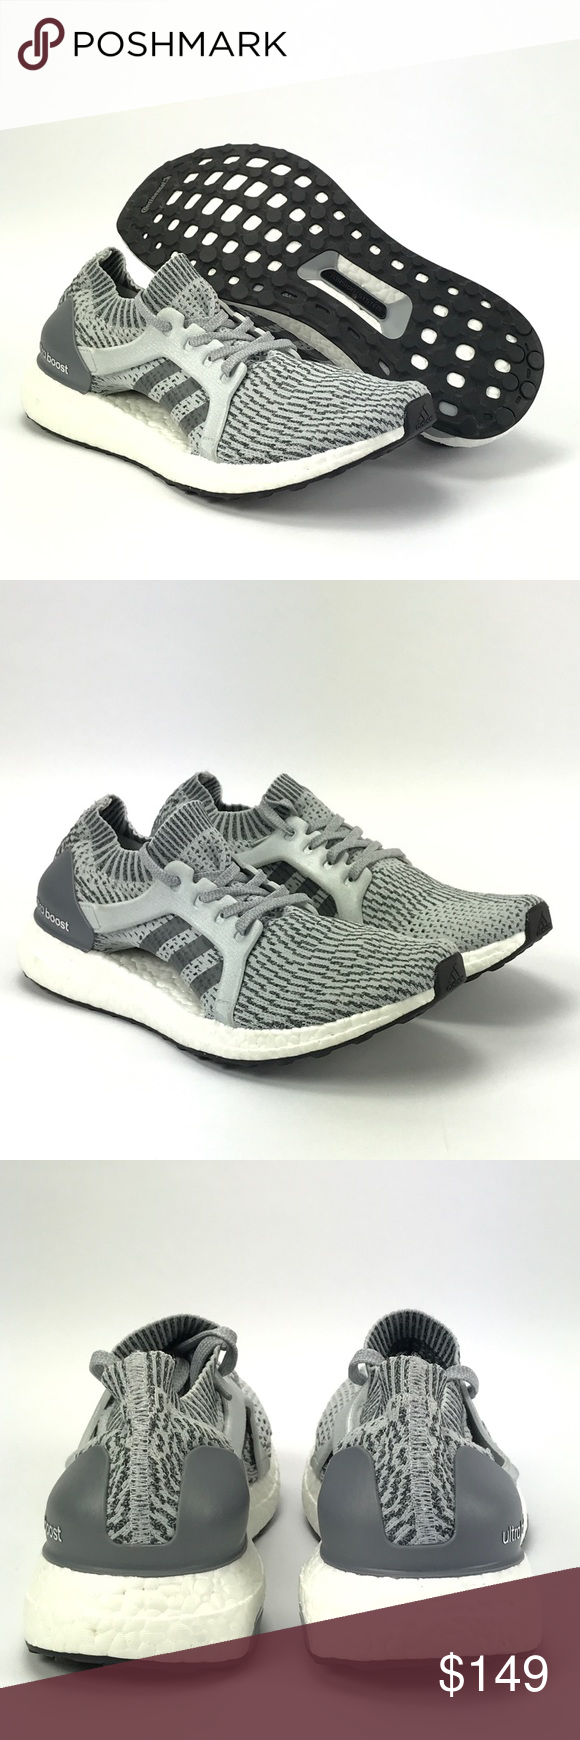 61eaac772 Adidas Ultra Boost X Womens Running Shoes Size 9.5 Adidas Ultra Boost X  Womens BB1695 Clear Grey Primeknit Running Shoes Size 9.5 New without box.